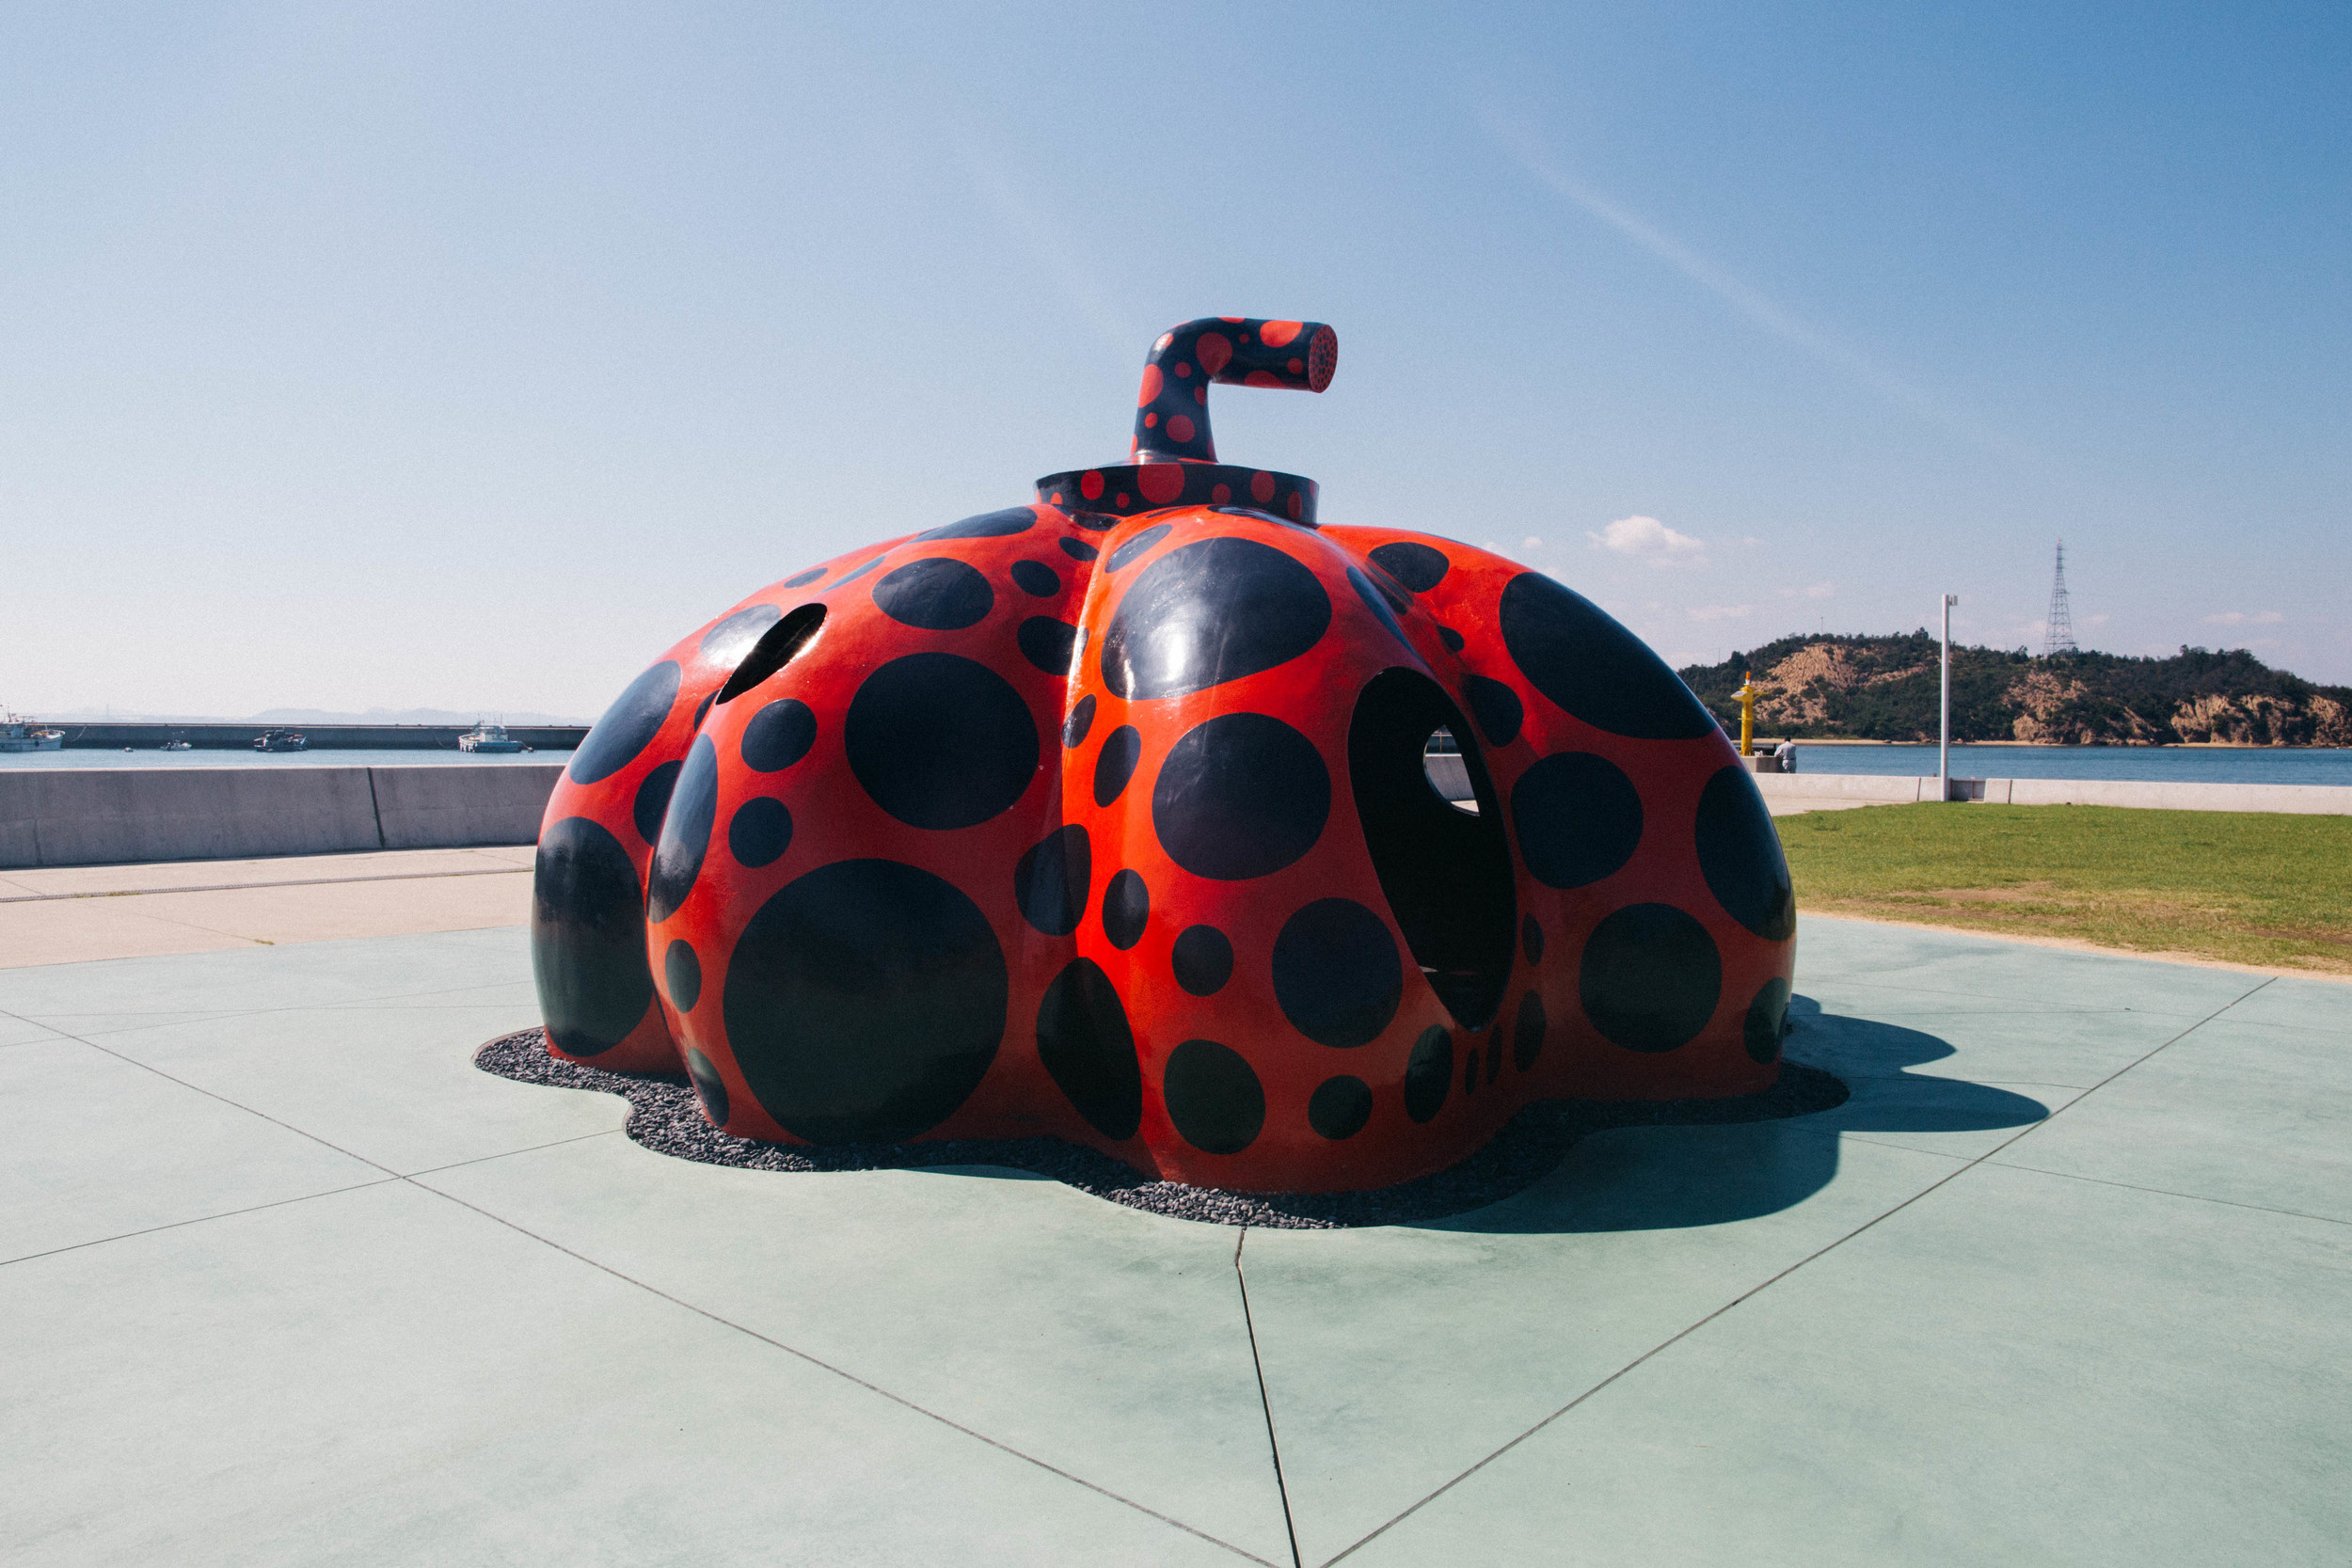 Yayoi Kusama's Red pumpkin will greet you on your arrival at Miyanoura Port